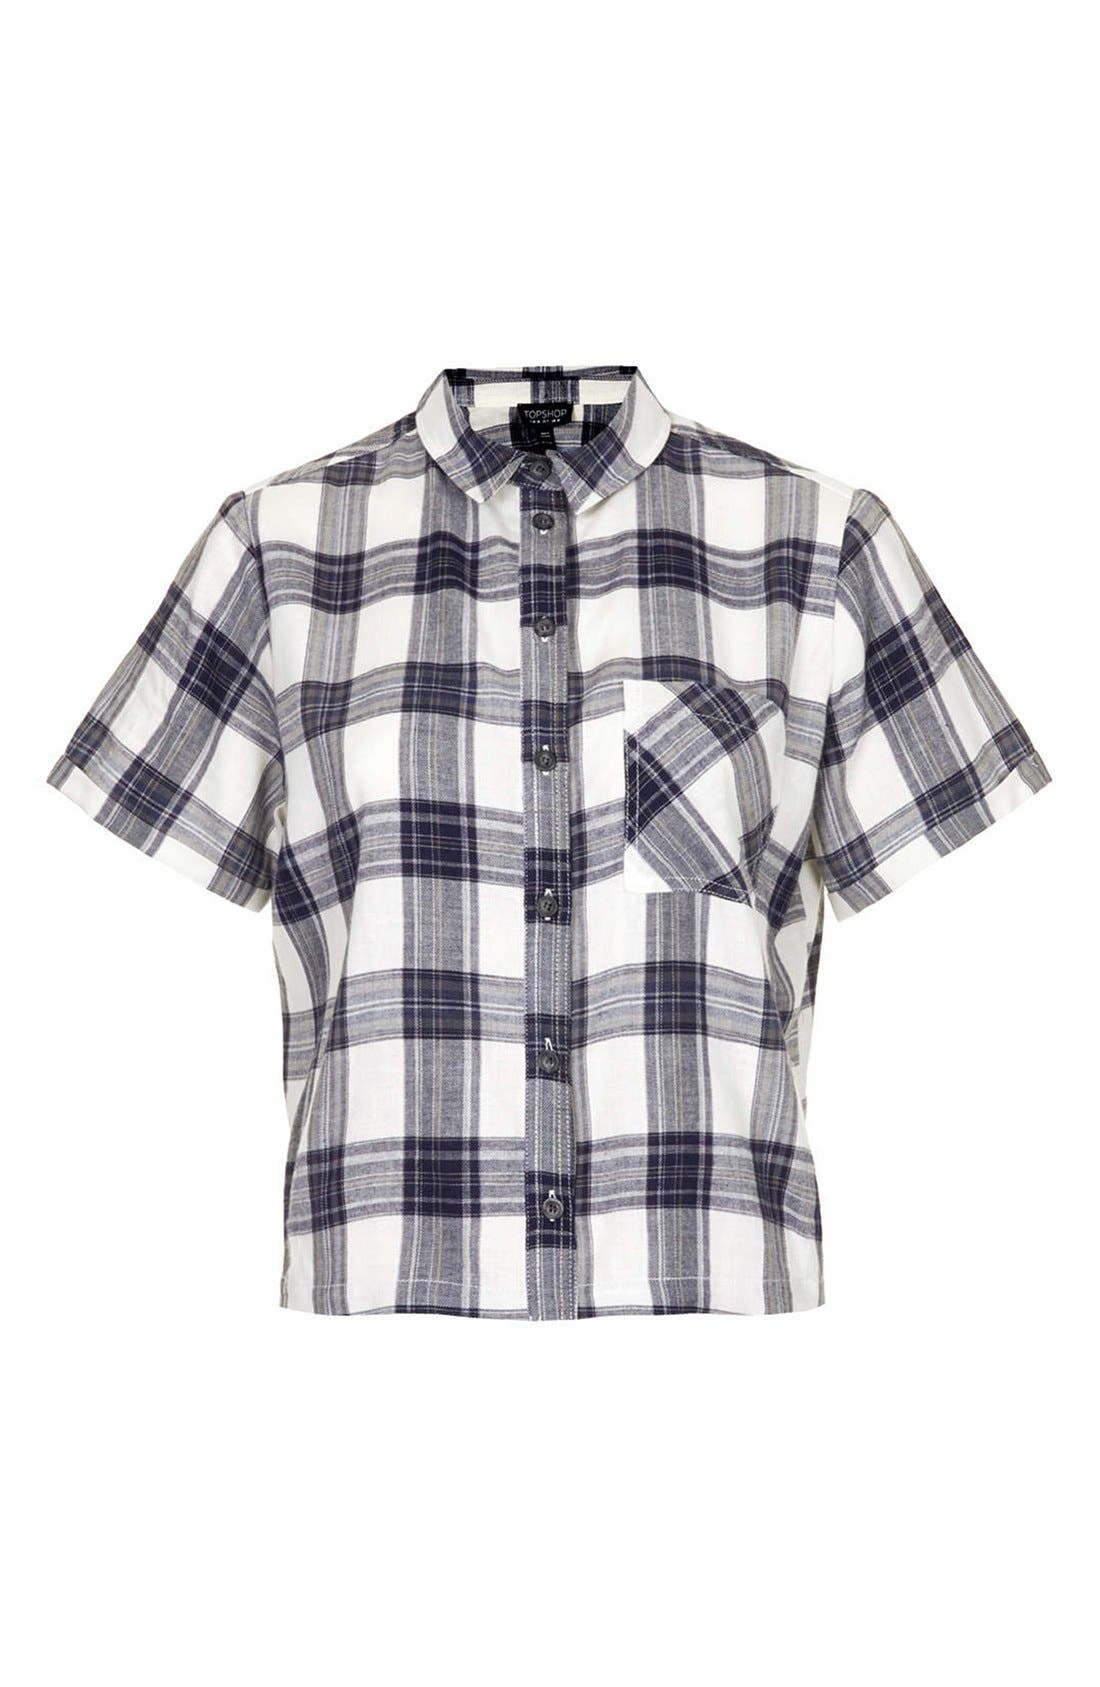 Alternate Image 3  - Topshop 'Emily' Check Print Cotton Shirt